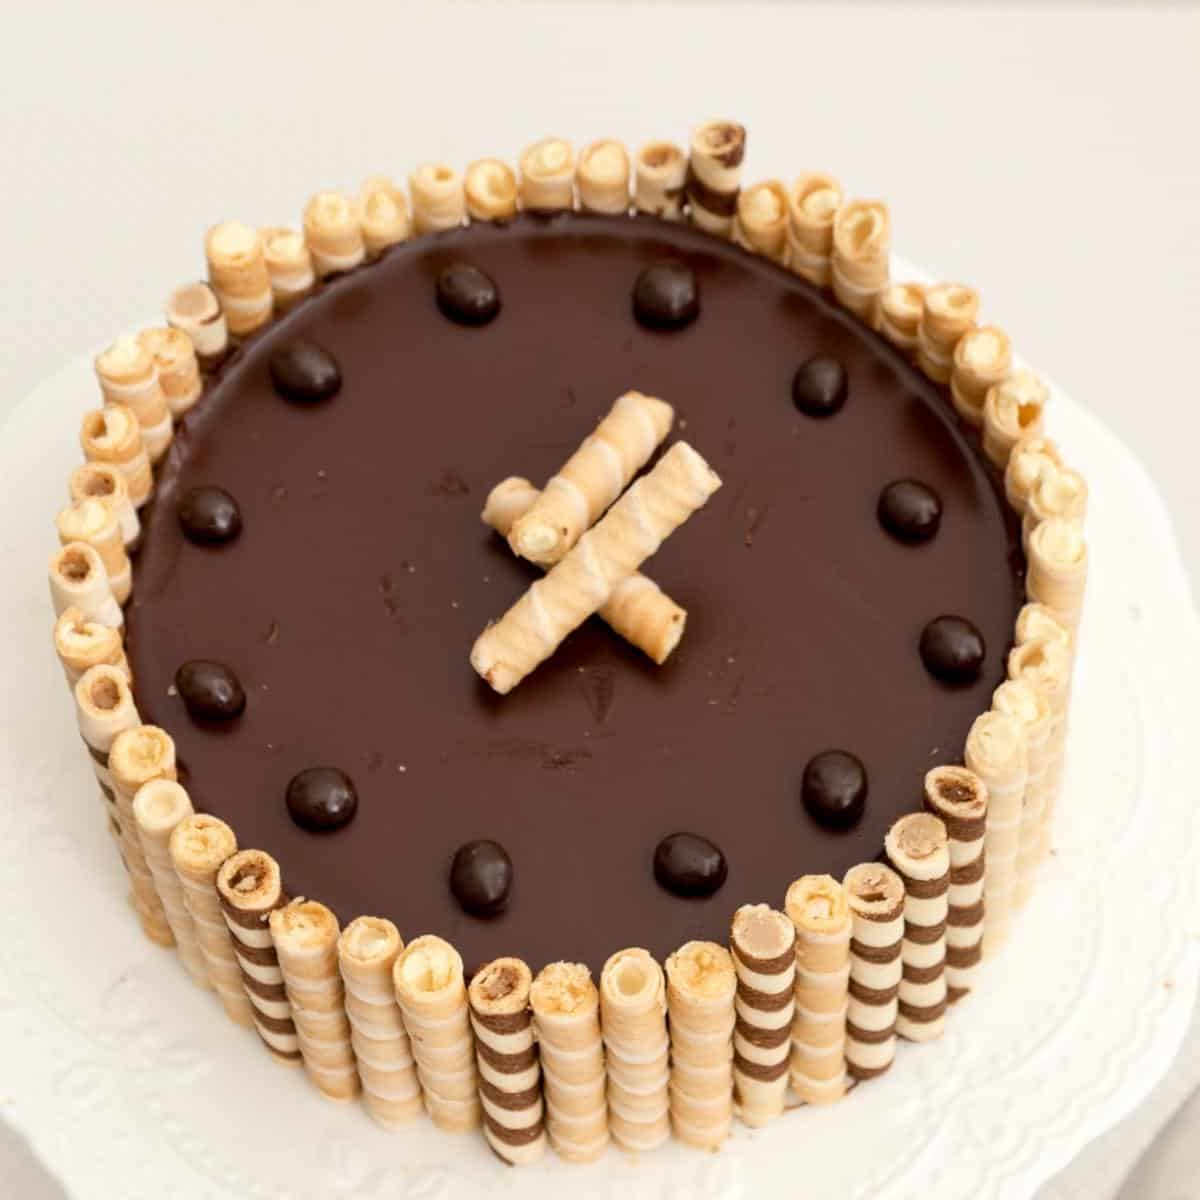 Flourless chocolate cake with chocolate wafers on a cake stand.